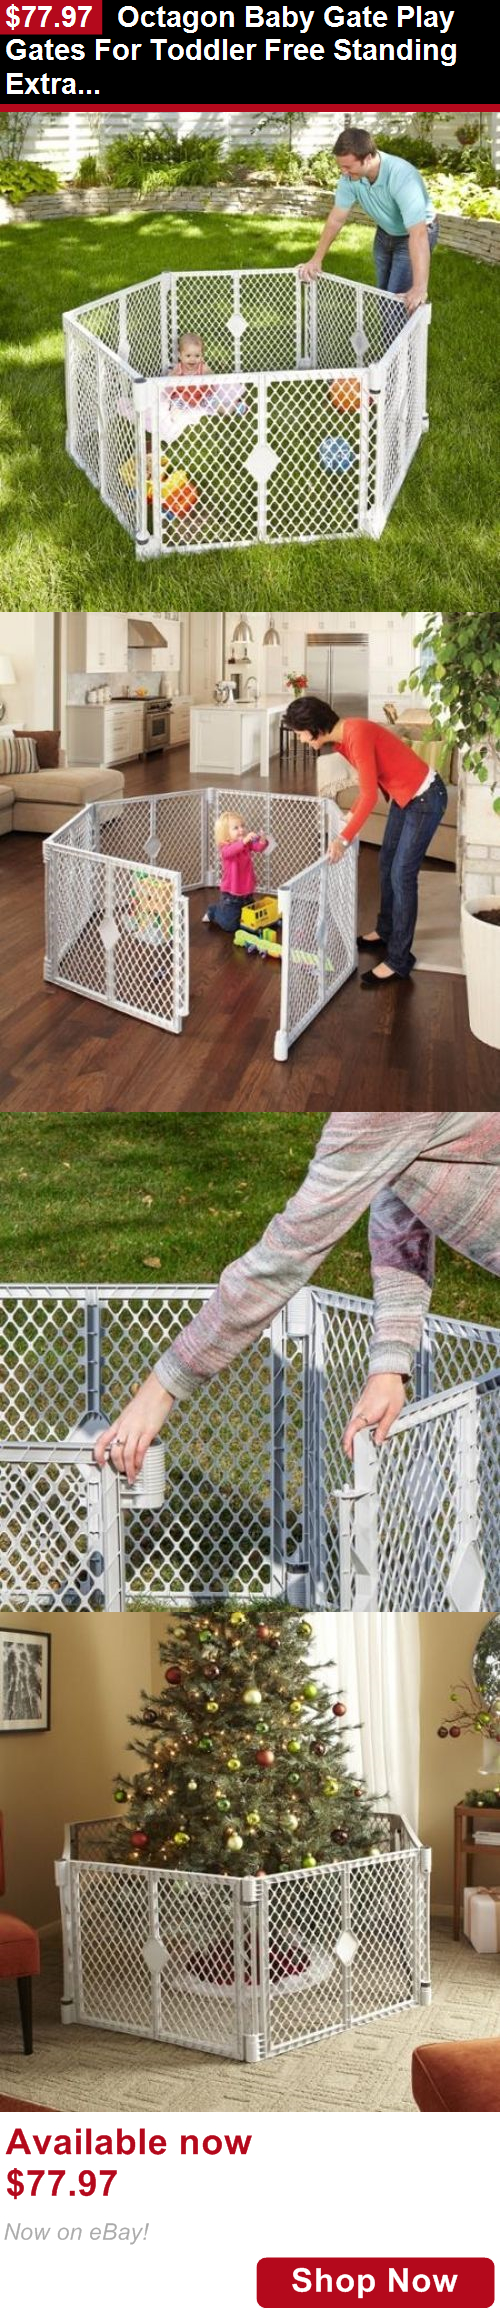 Baby Play Pens And Play Yards Octagon Baby Gate Play Gates For